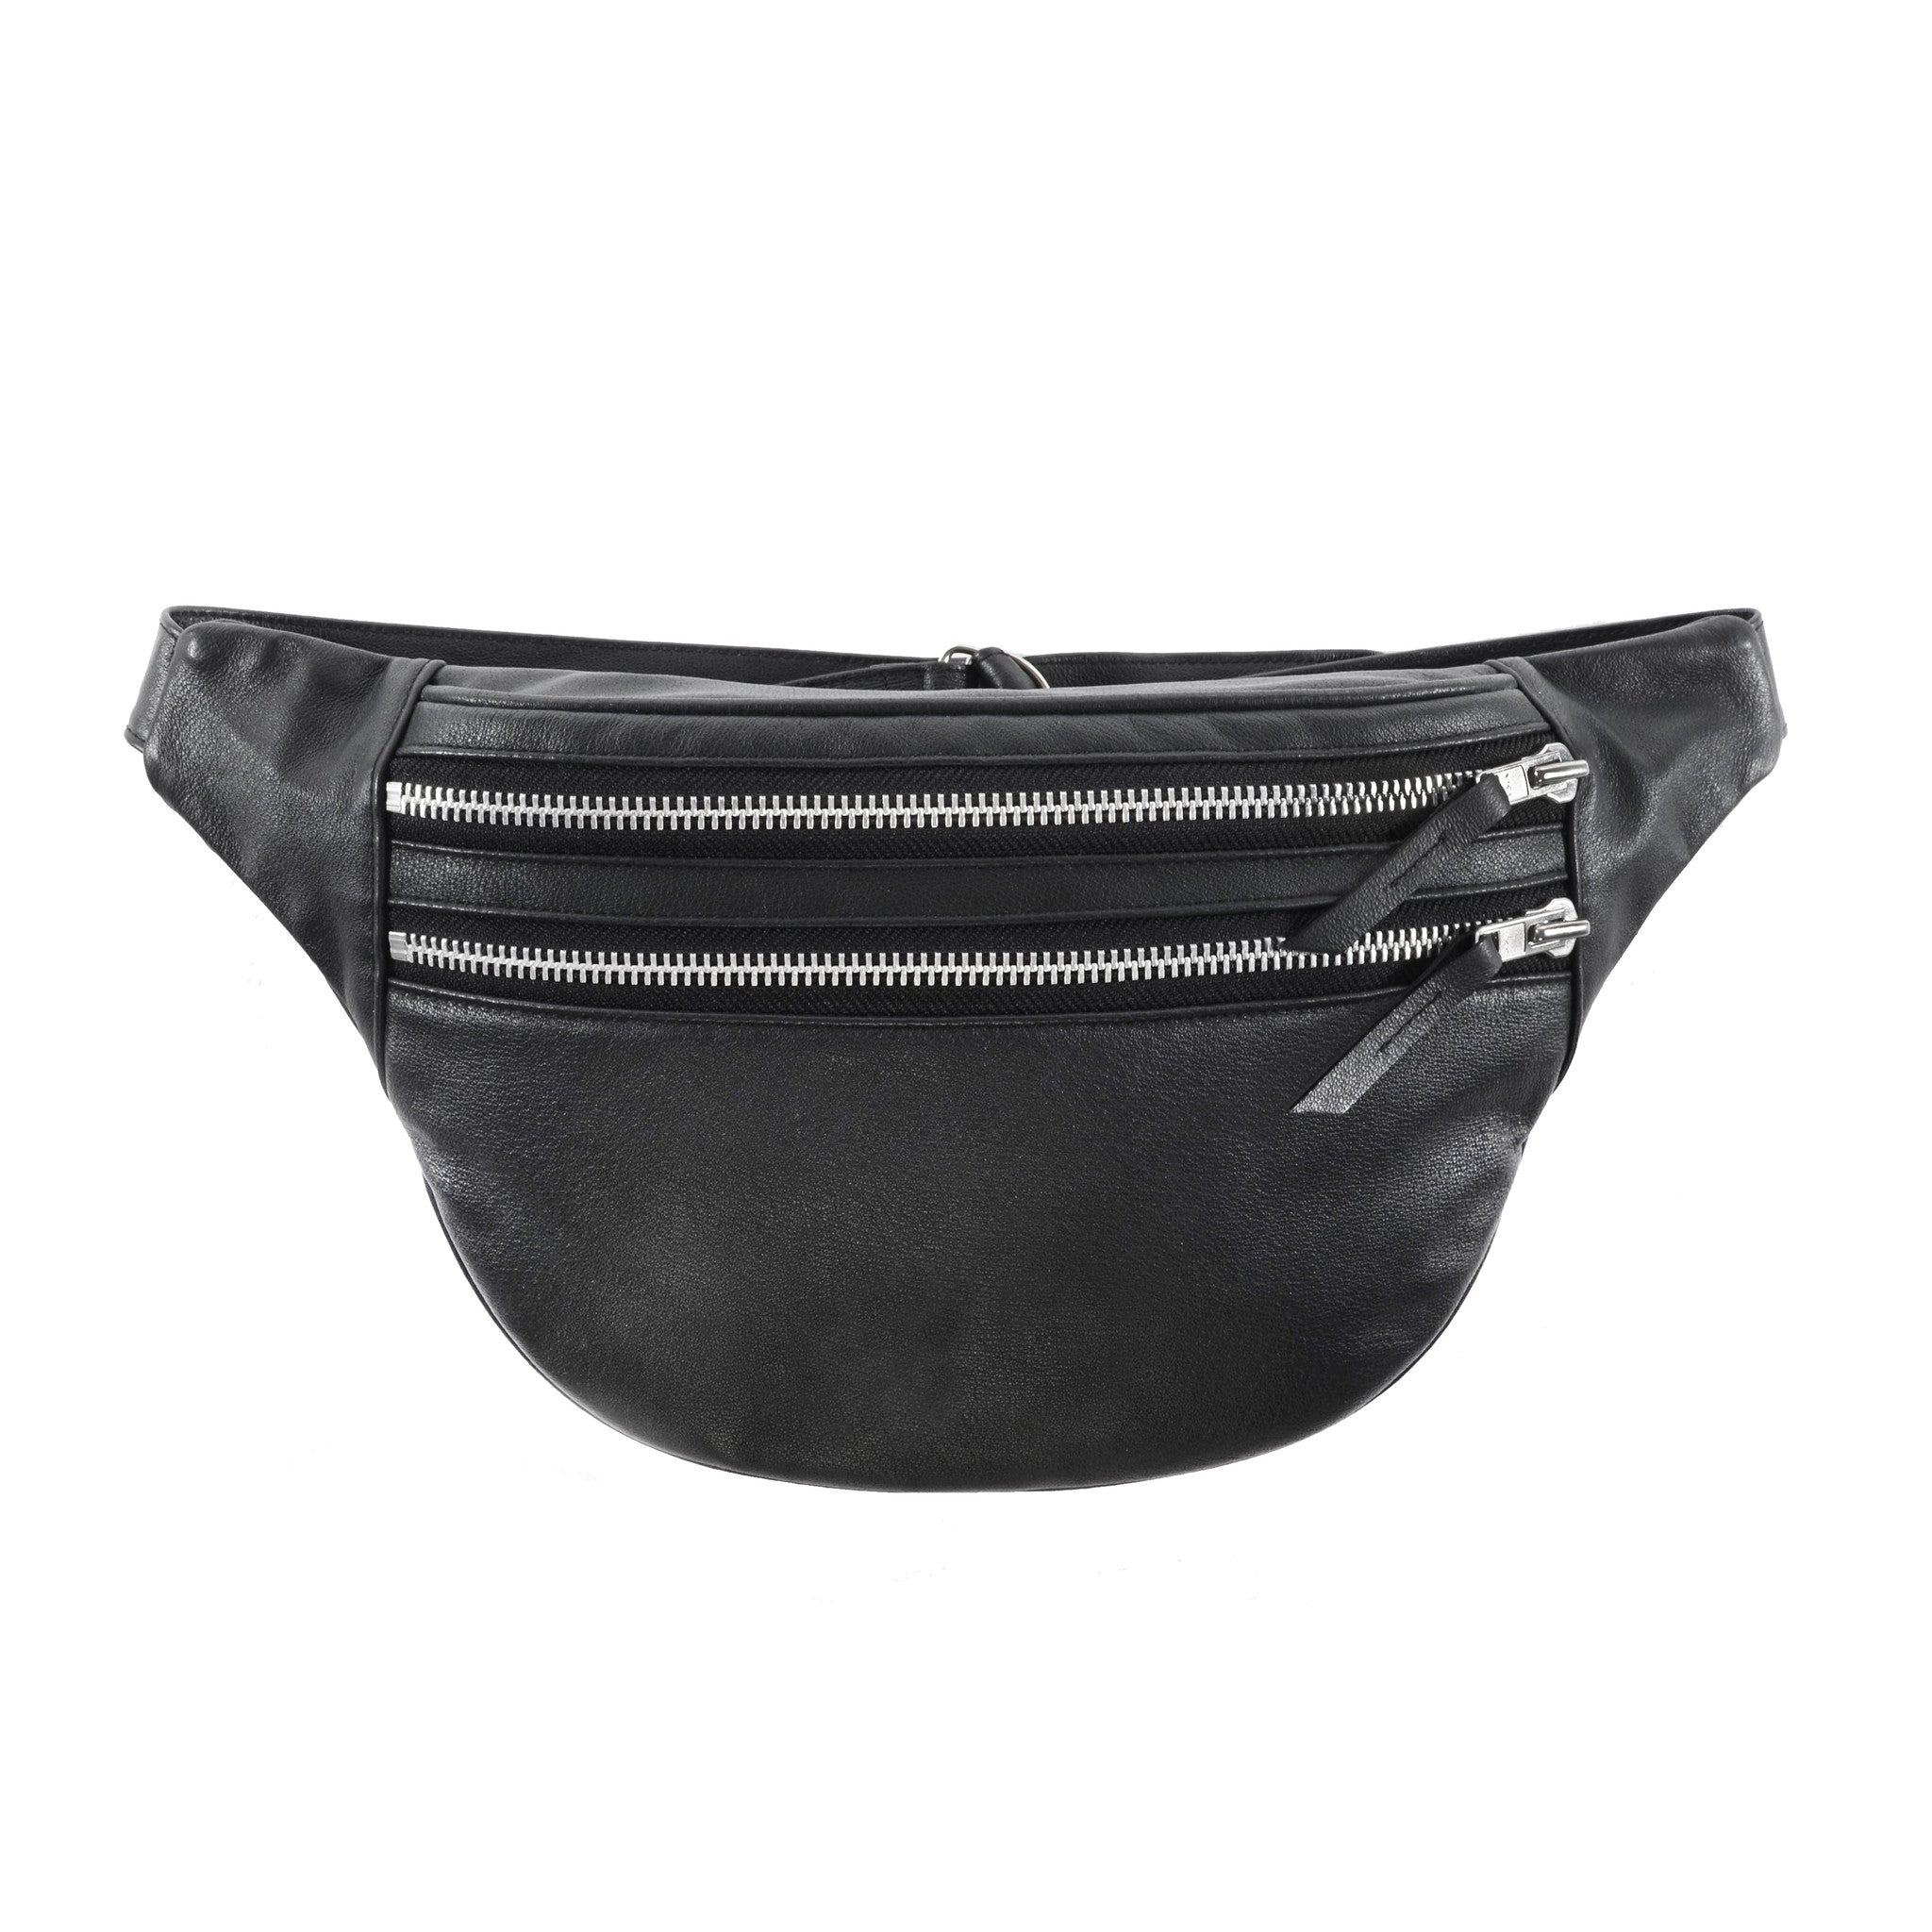 DOUBLE ZIPPER BUM BAG - CHRISTINA FISCHER